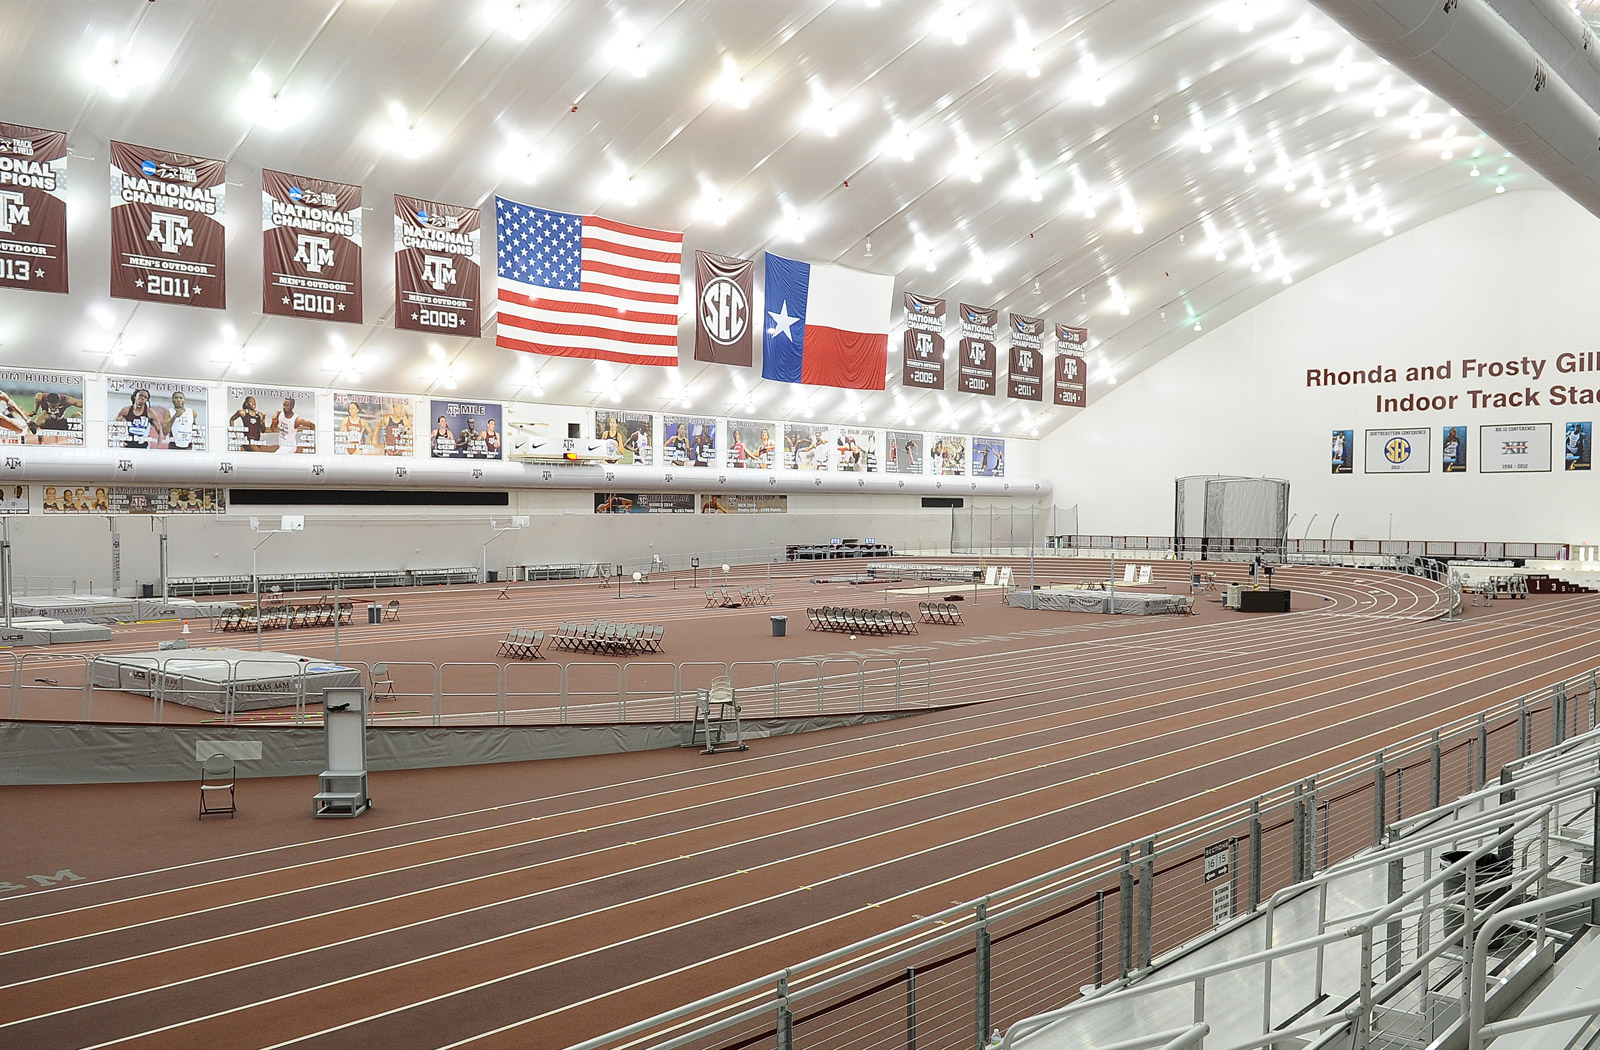 36 Gas Range >> 2018 NCAA DIVISION I INDOOR TRACK & FIELD CHAMPIONSHIPS ...